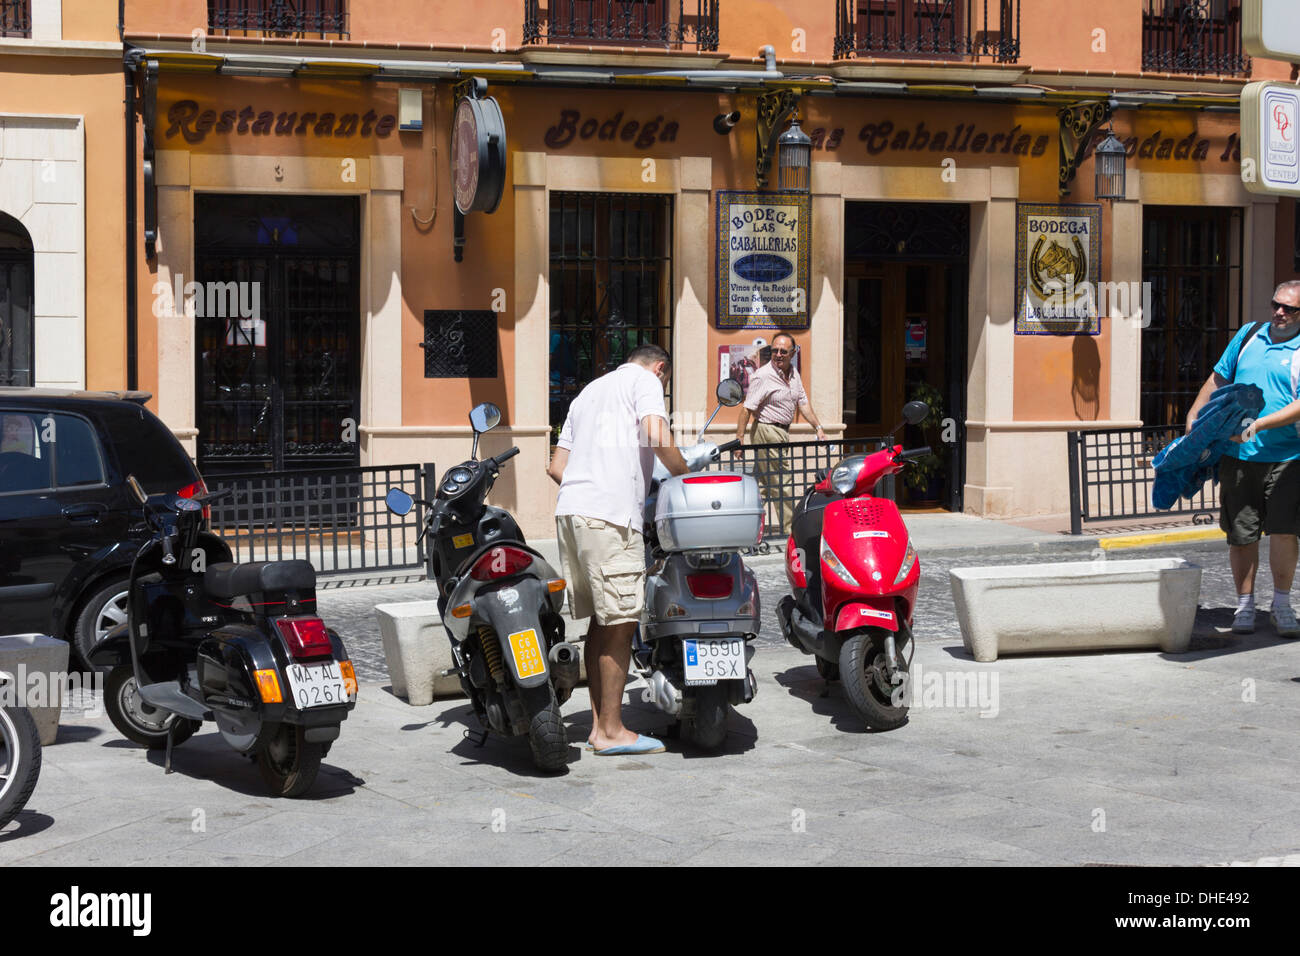 Scooters parked on Carretera Espinel in Ronda, Spain - Stock Image